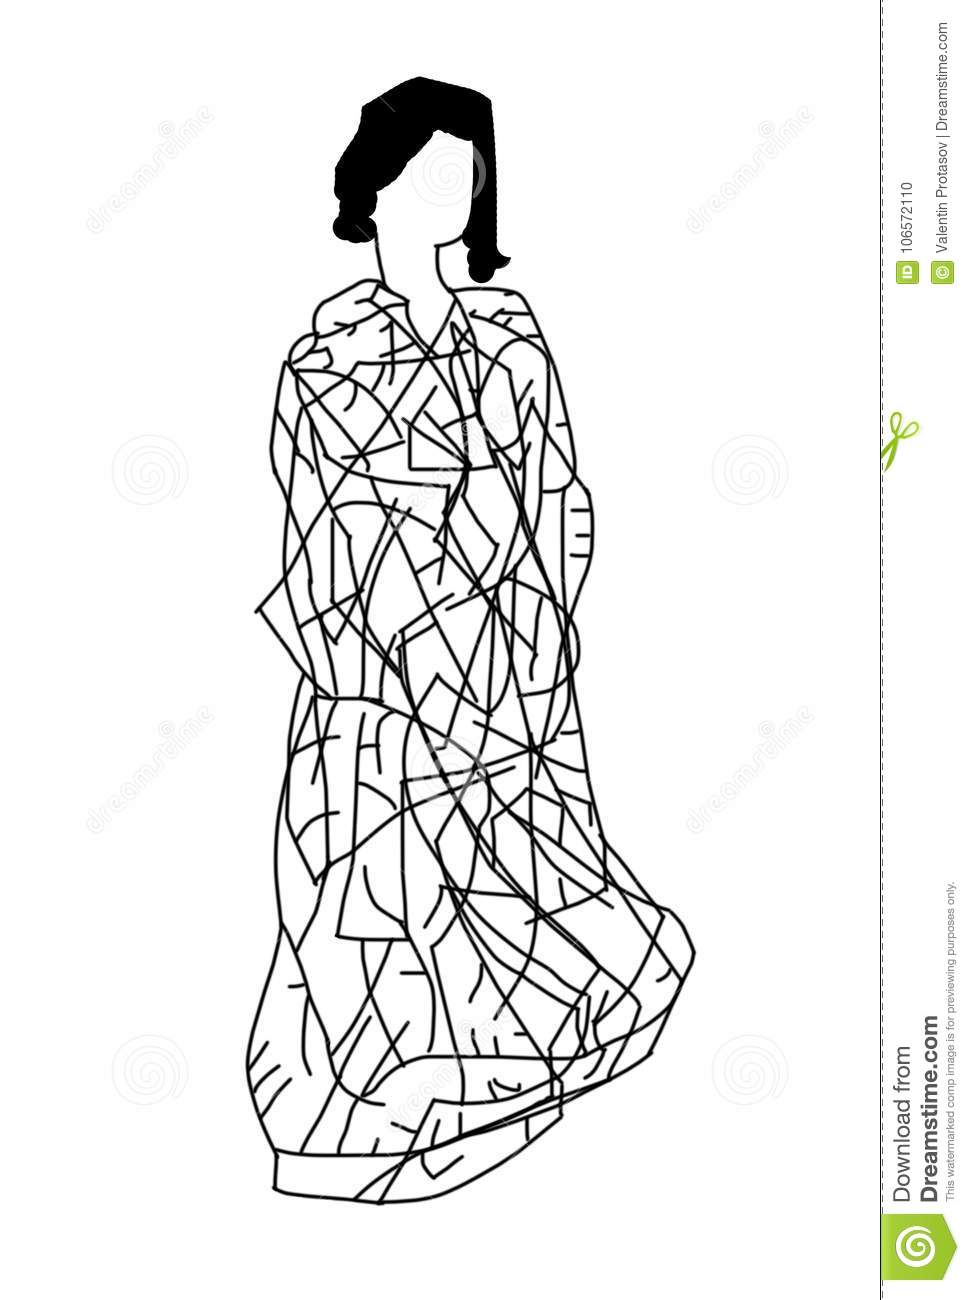 Woman Painting Fashion Sketch People Stock Illustration Illustration Of Painted Innocence 106572110